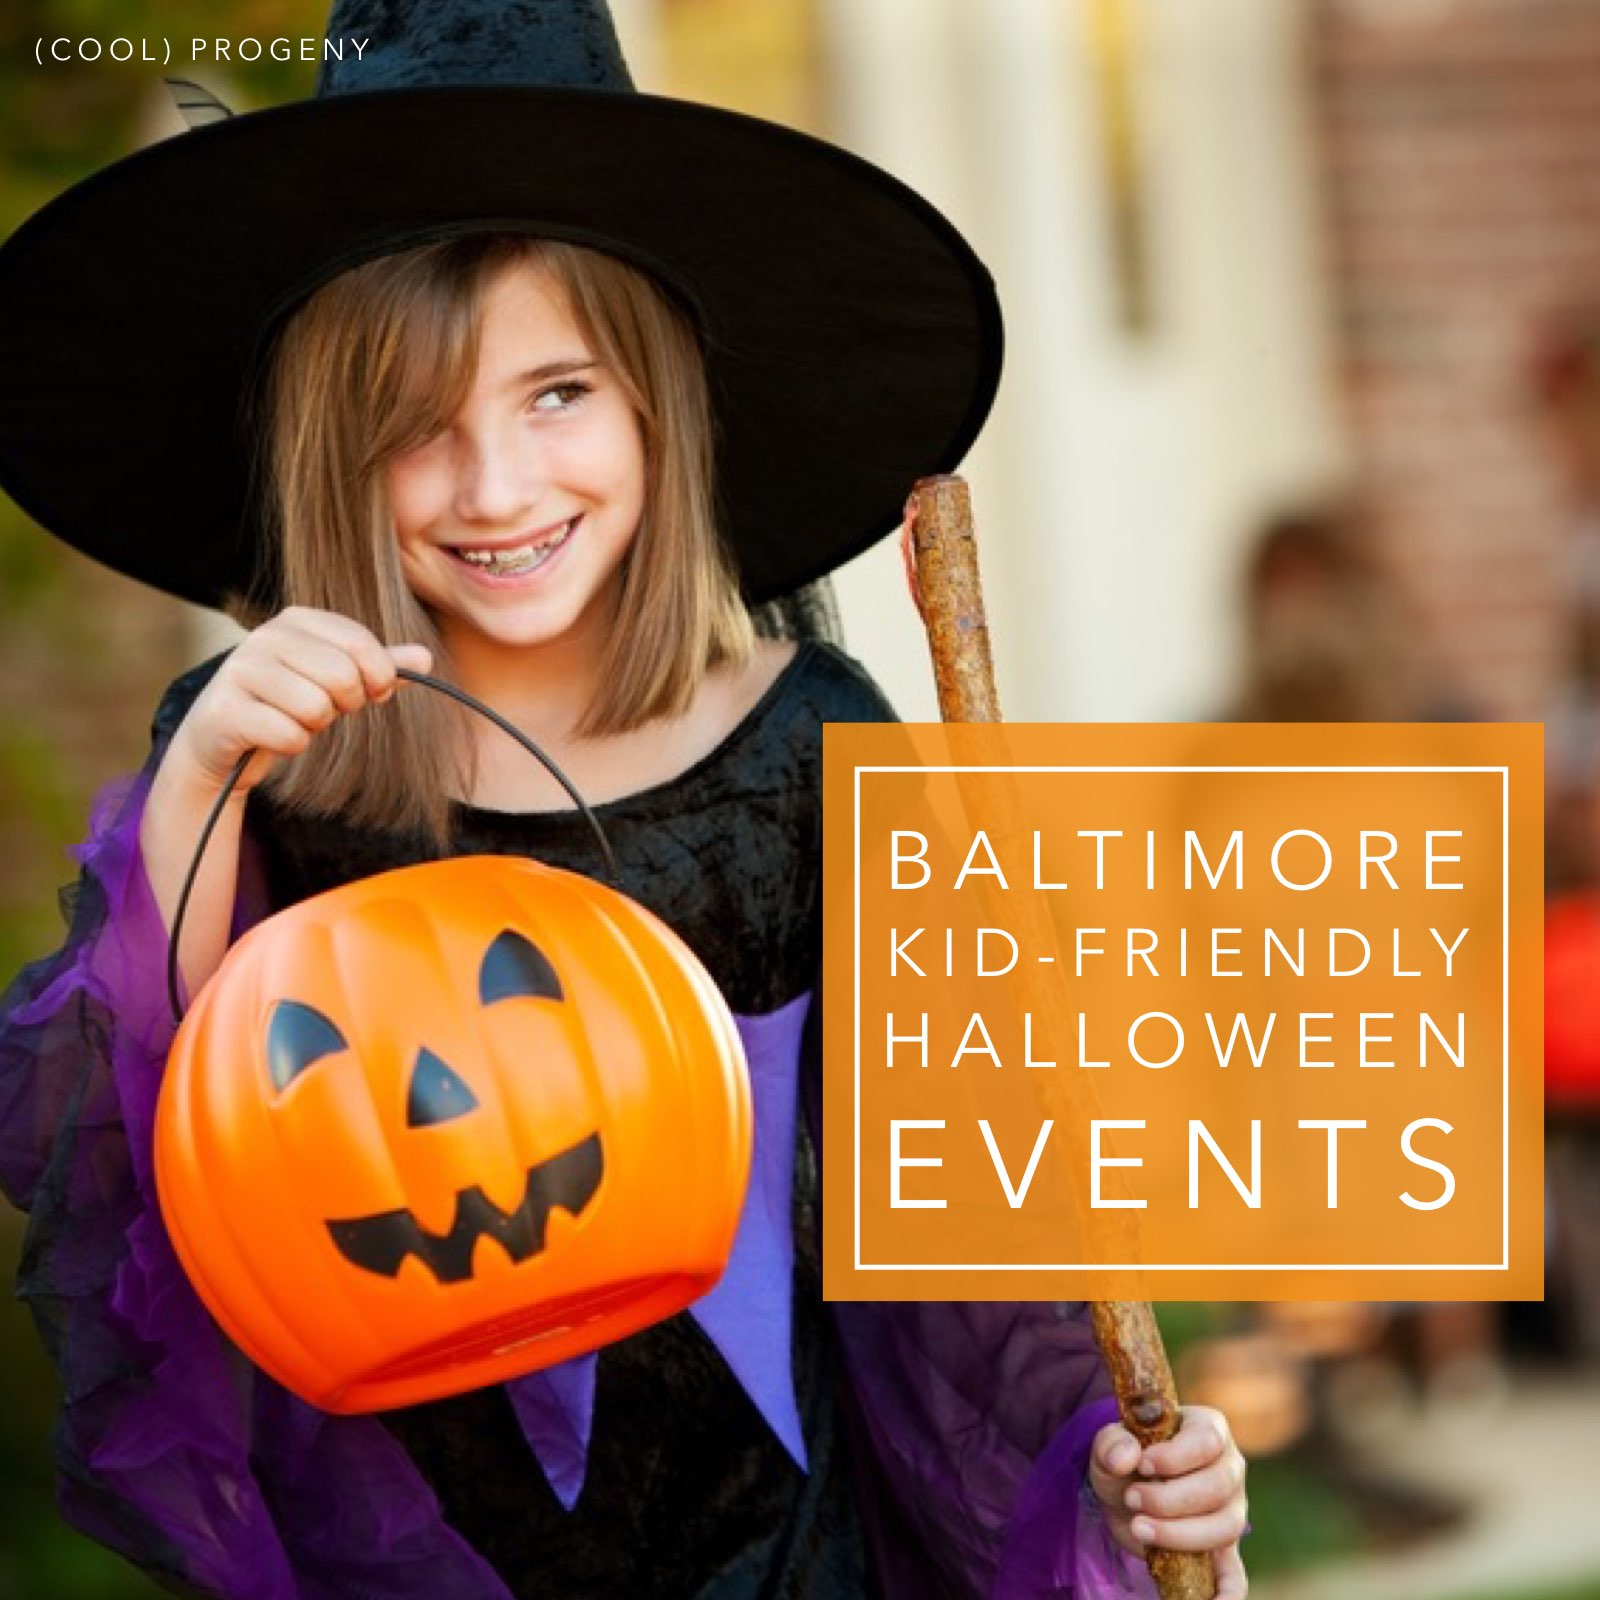 kid-friendly halloween events in baltimore - (cool) progeny